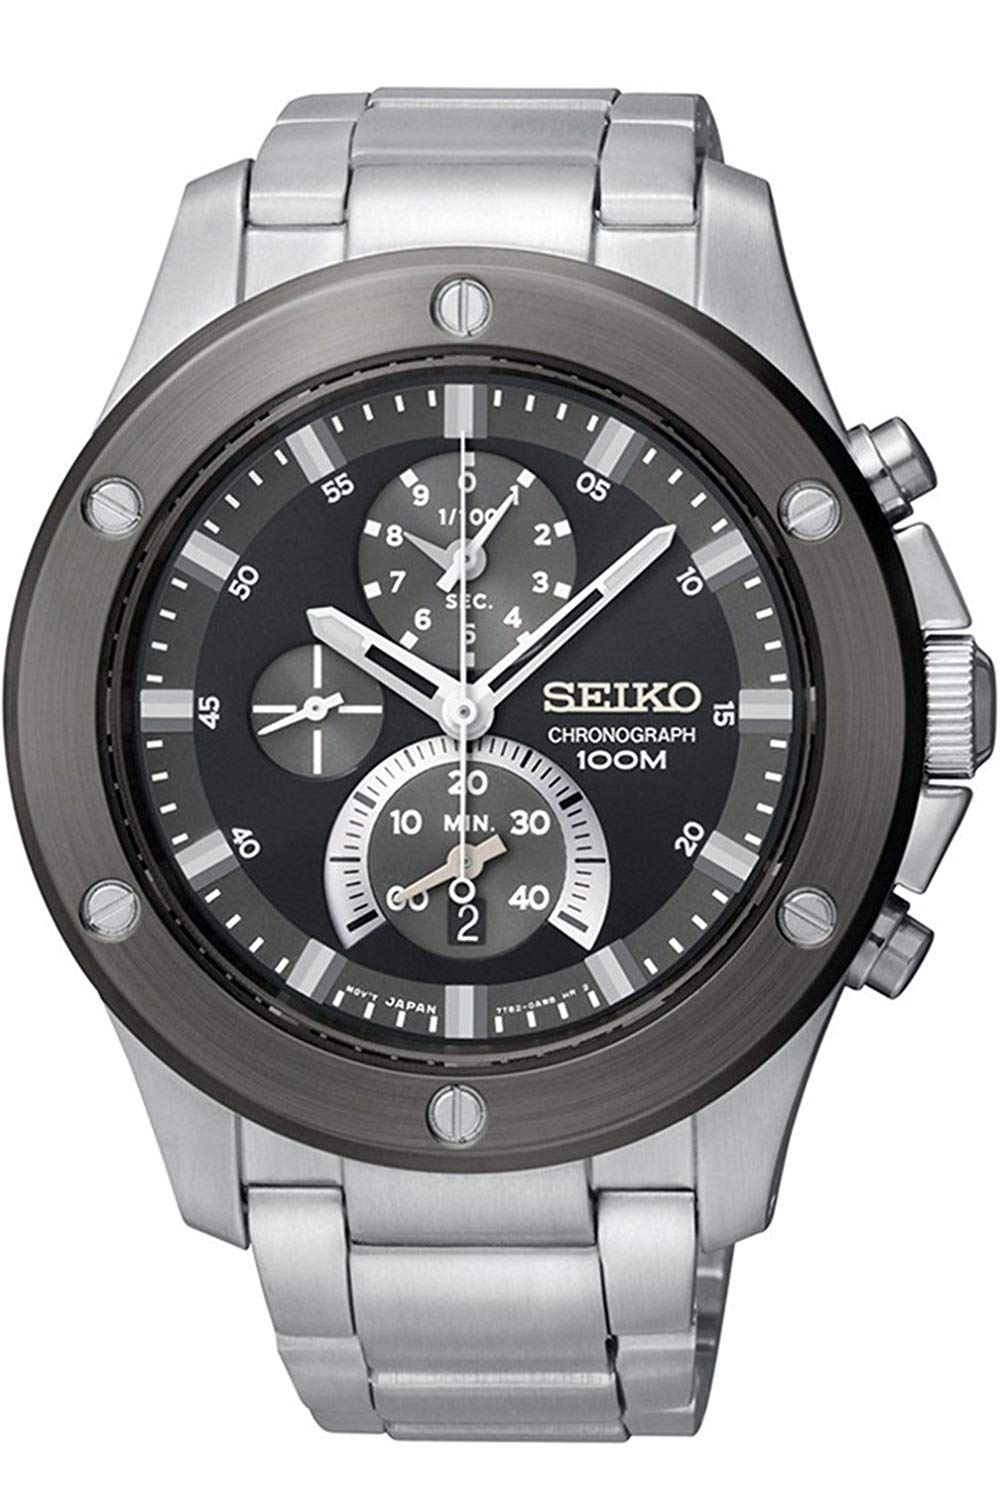 Seiko Chronograph Stainless Steel Case Mens Watch SPC097P1